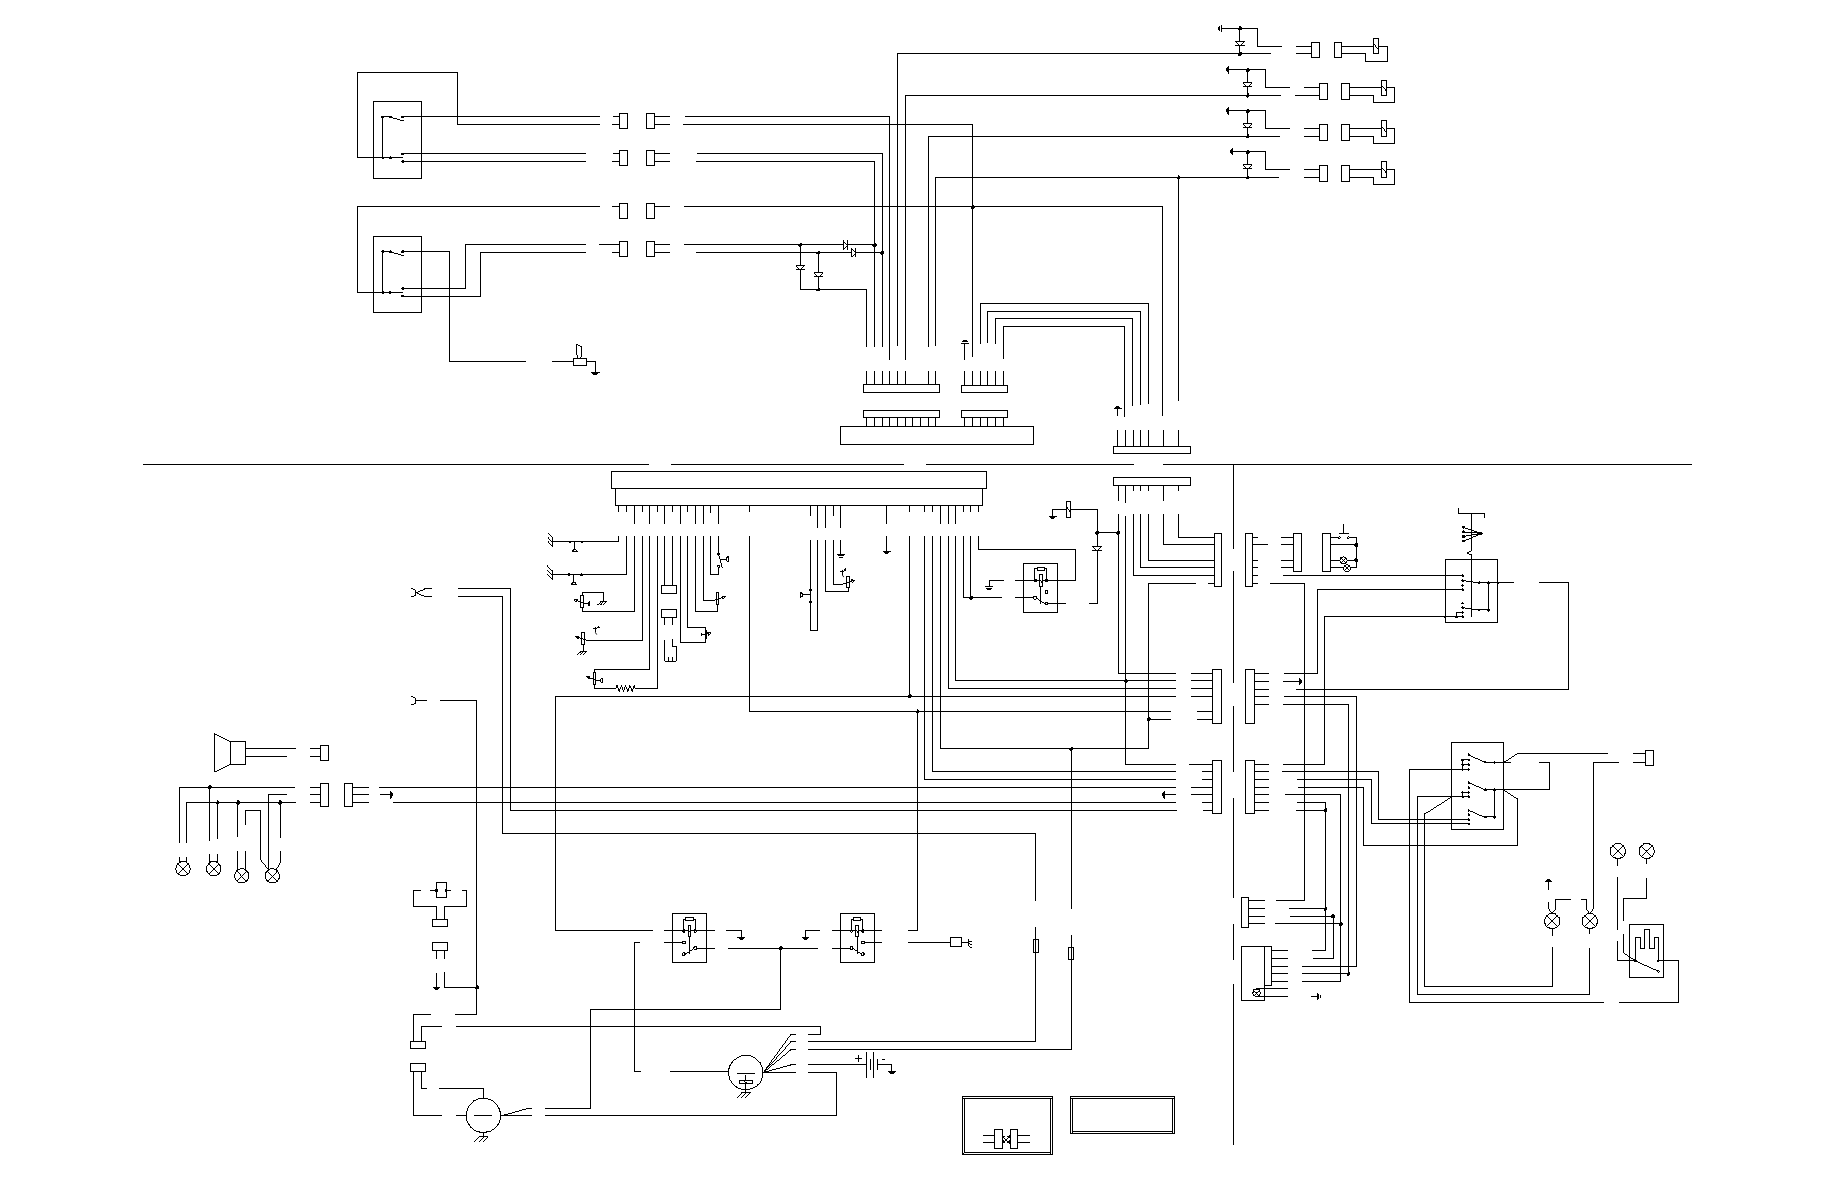 bobcat 853 wiring schematic loader bobcat 853  853h manual part 44  loader bobcat 853  853h manual part 44